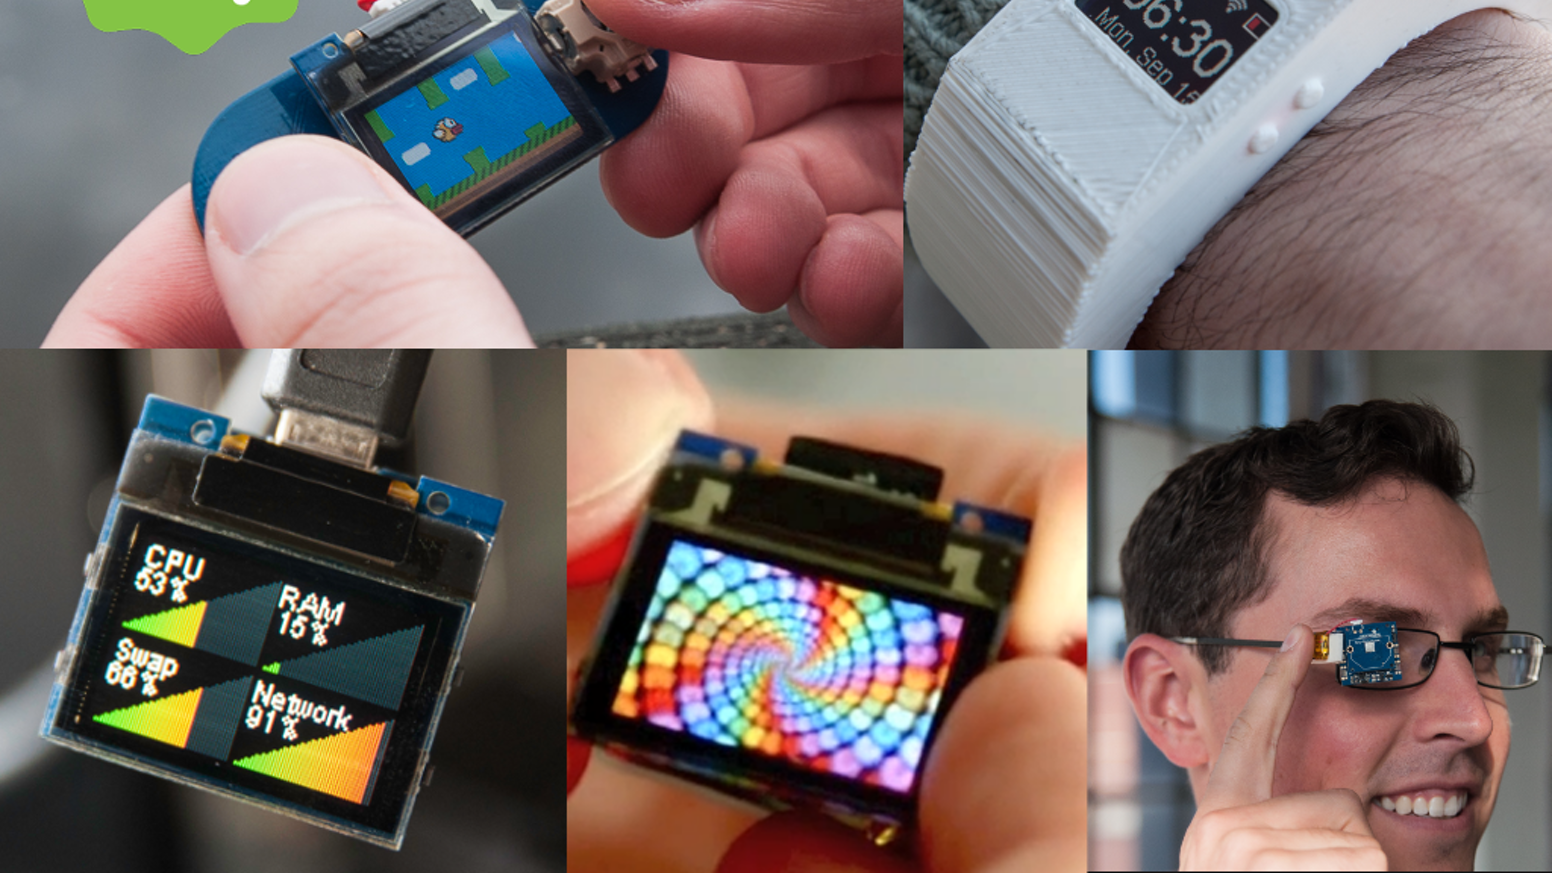 TinyScreen: A color display the size of your thumb! by Ken